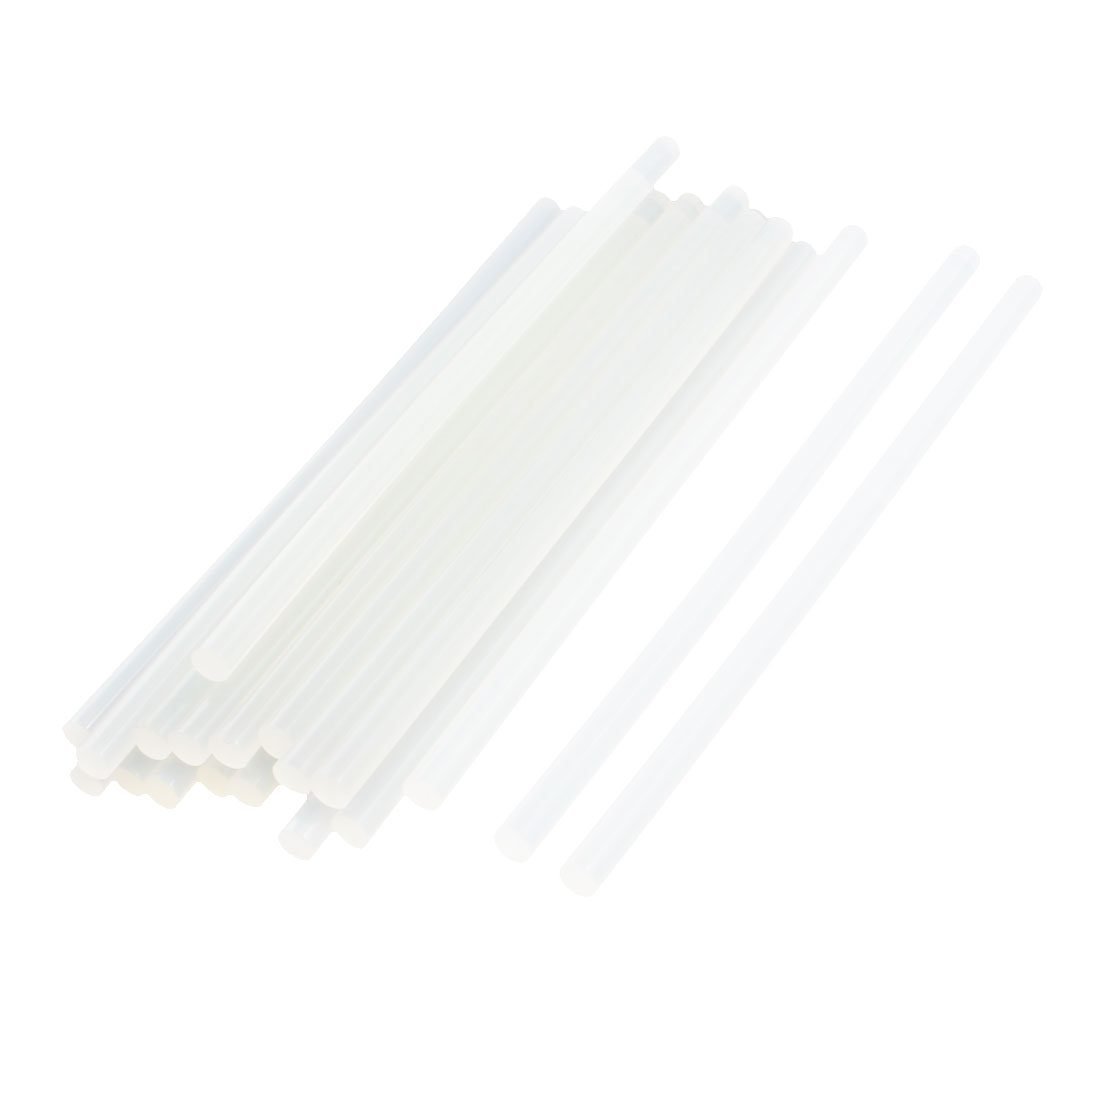 20pcs Adhesive Hot Melt Glue Sticks 7mm x 170mm for Electric Glue Gun